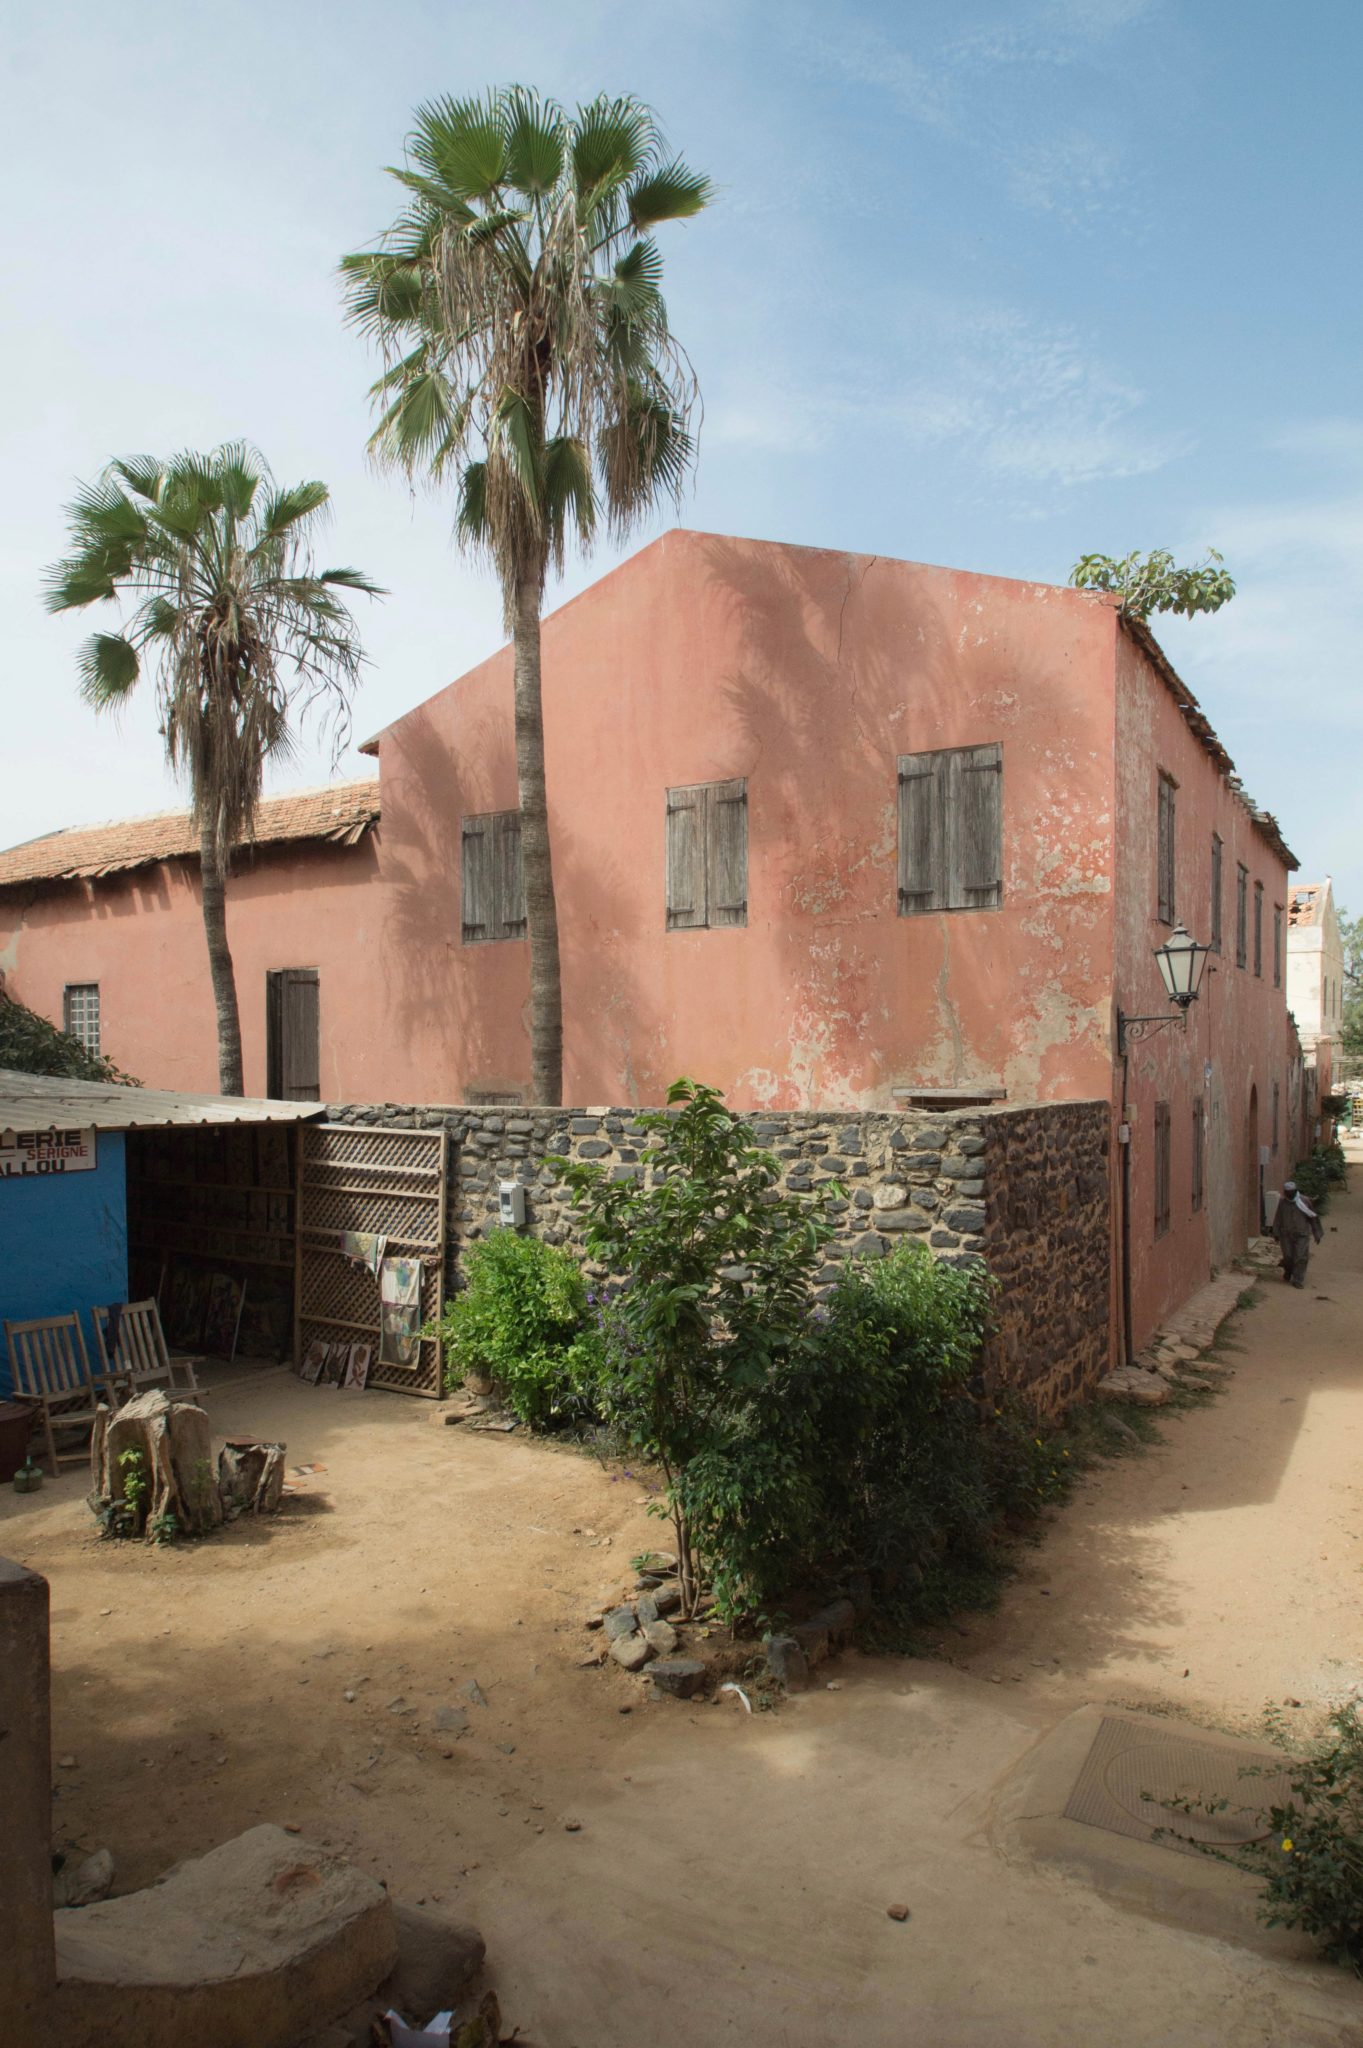 Senegal Travel Advice: The architecture on Ile de Gorée is simply stunning.